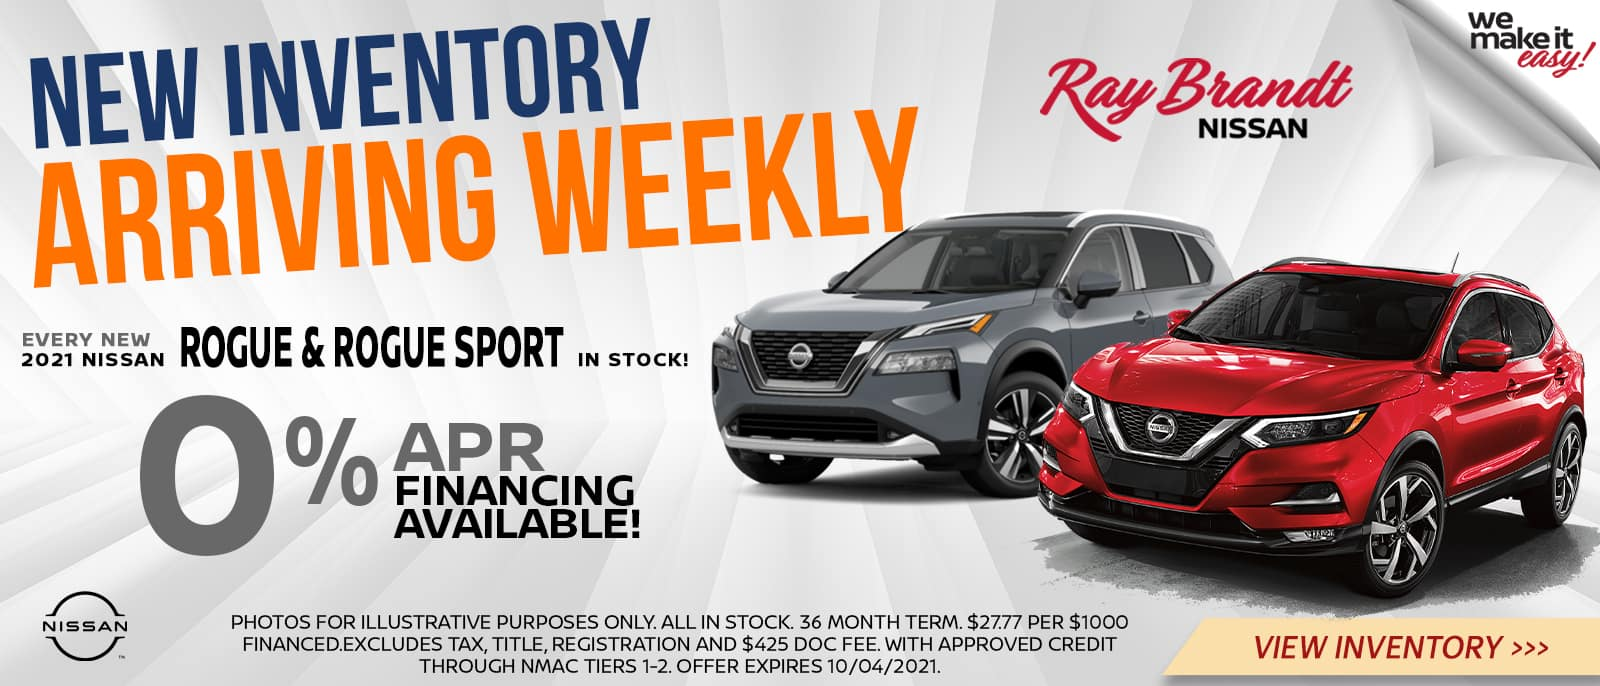 New Inventory Arriving Weekly 0% APR Financing on Nissan Rogue and Rogue Sport